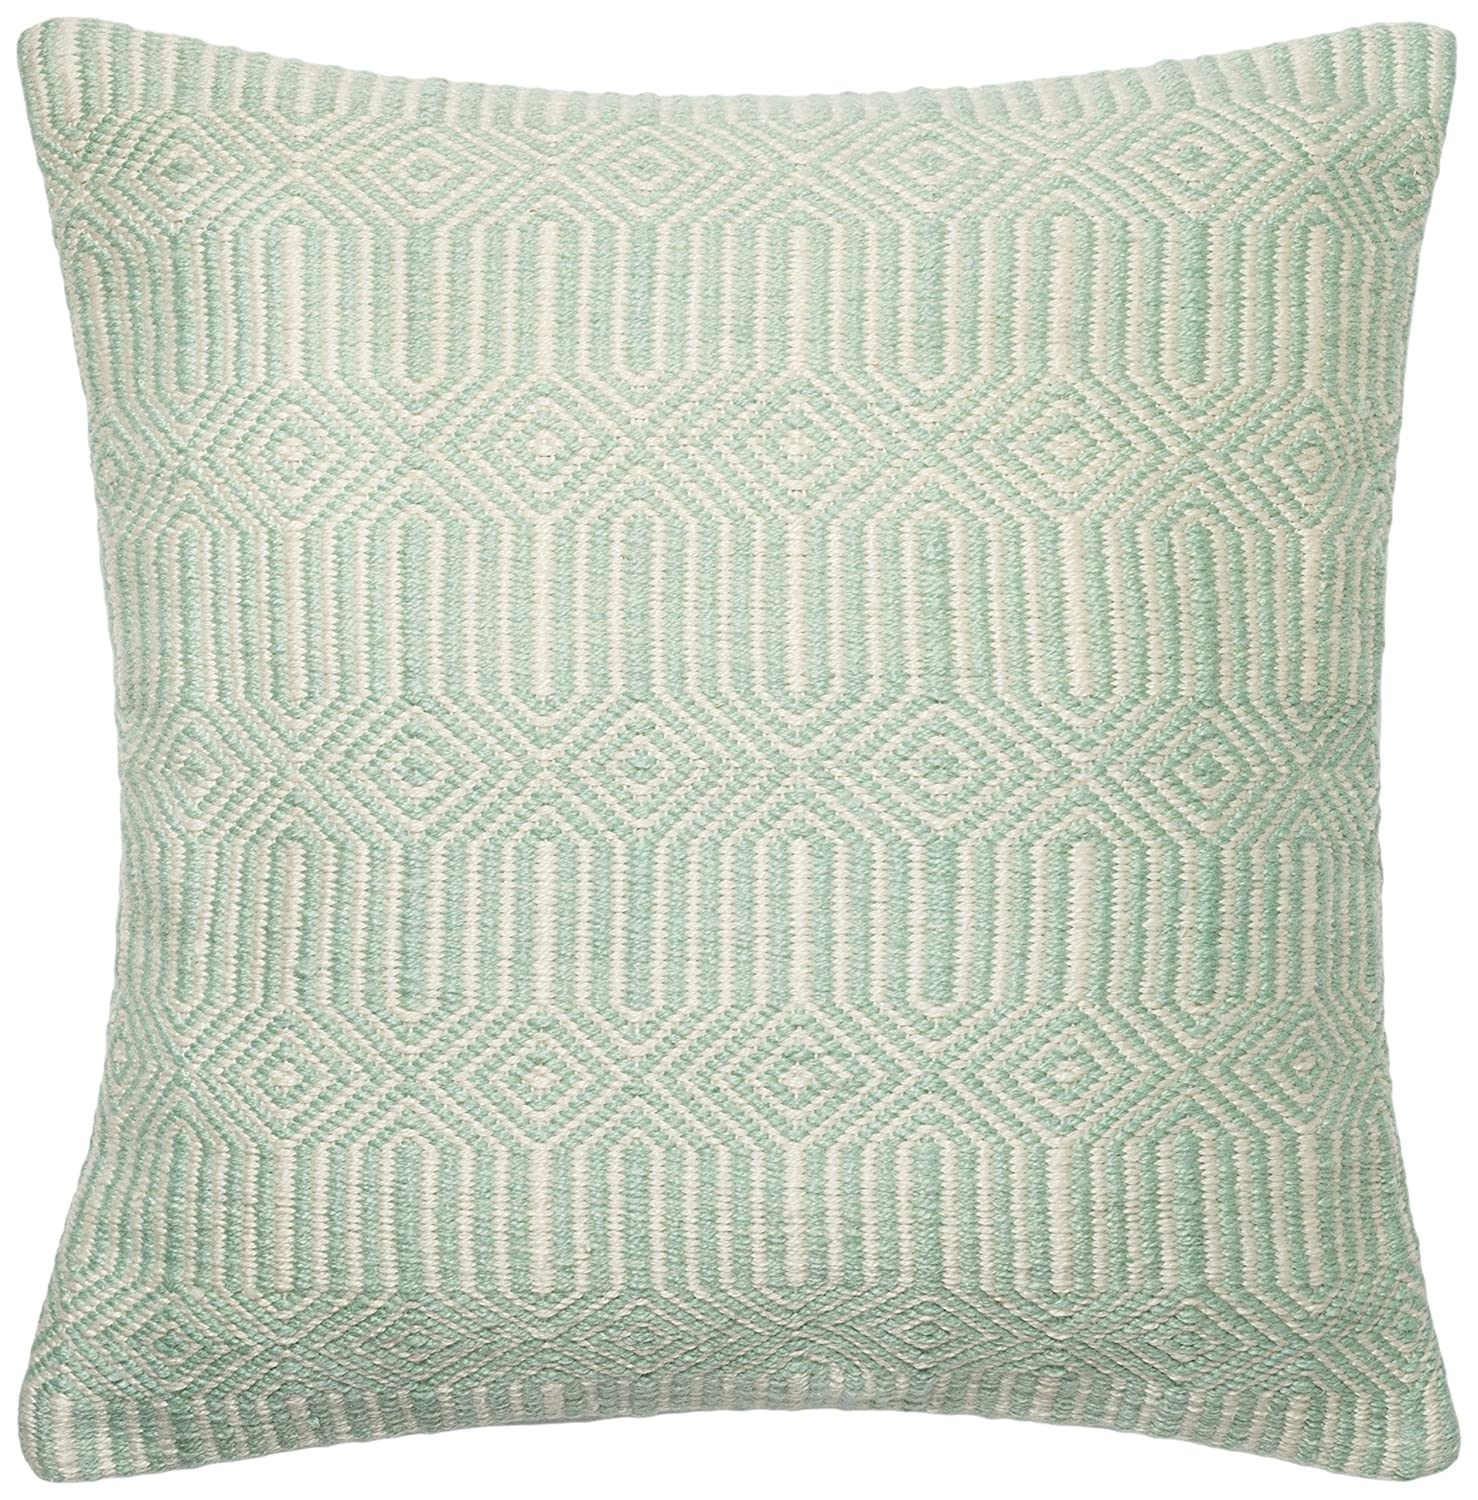 Aqua//Ivory 22 x 22 Loloi DSET DSETP0339AQIVPIL3 100/% Polyester Cover and Down Fill Decorative Accent Pillow